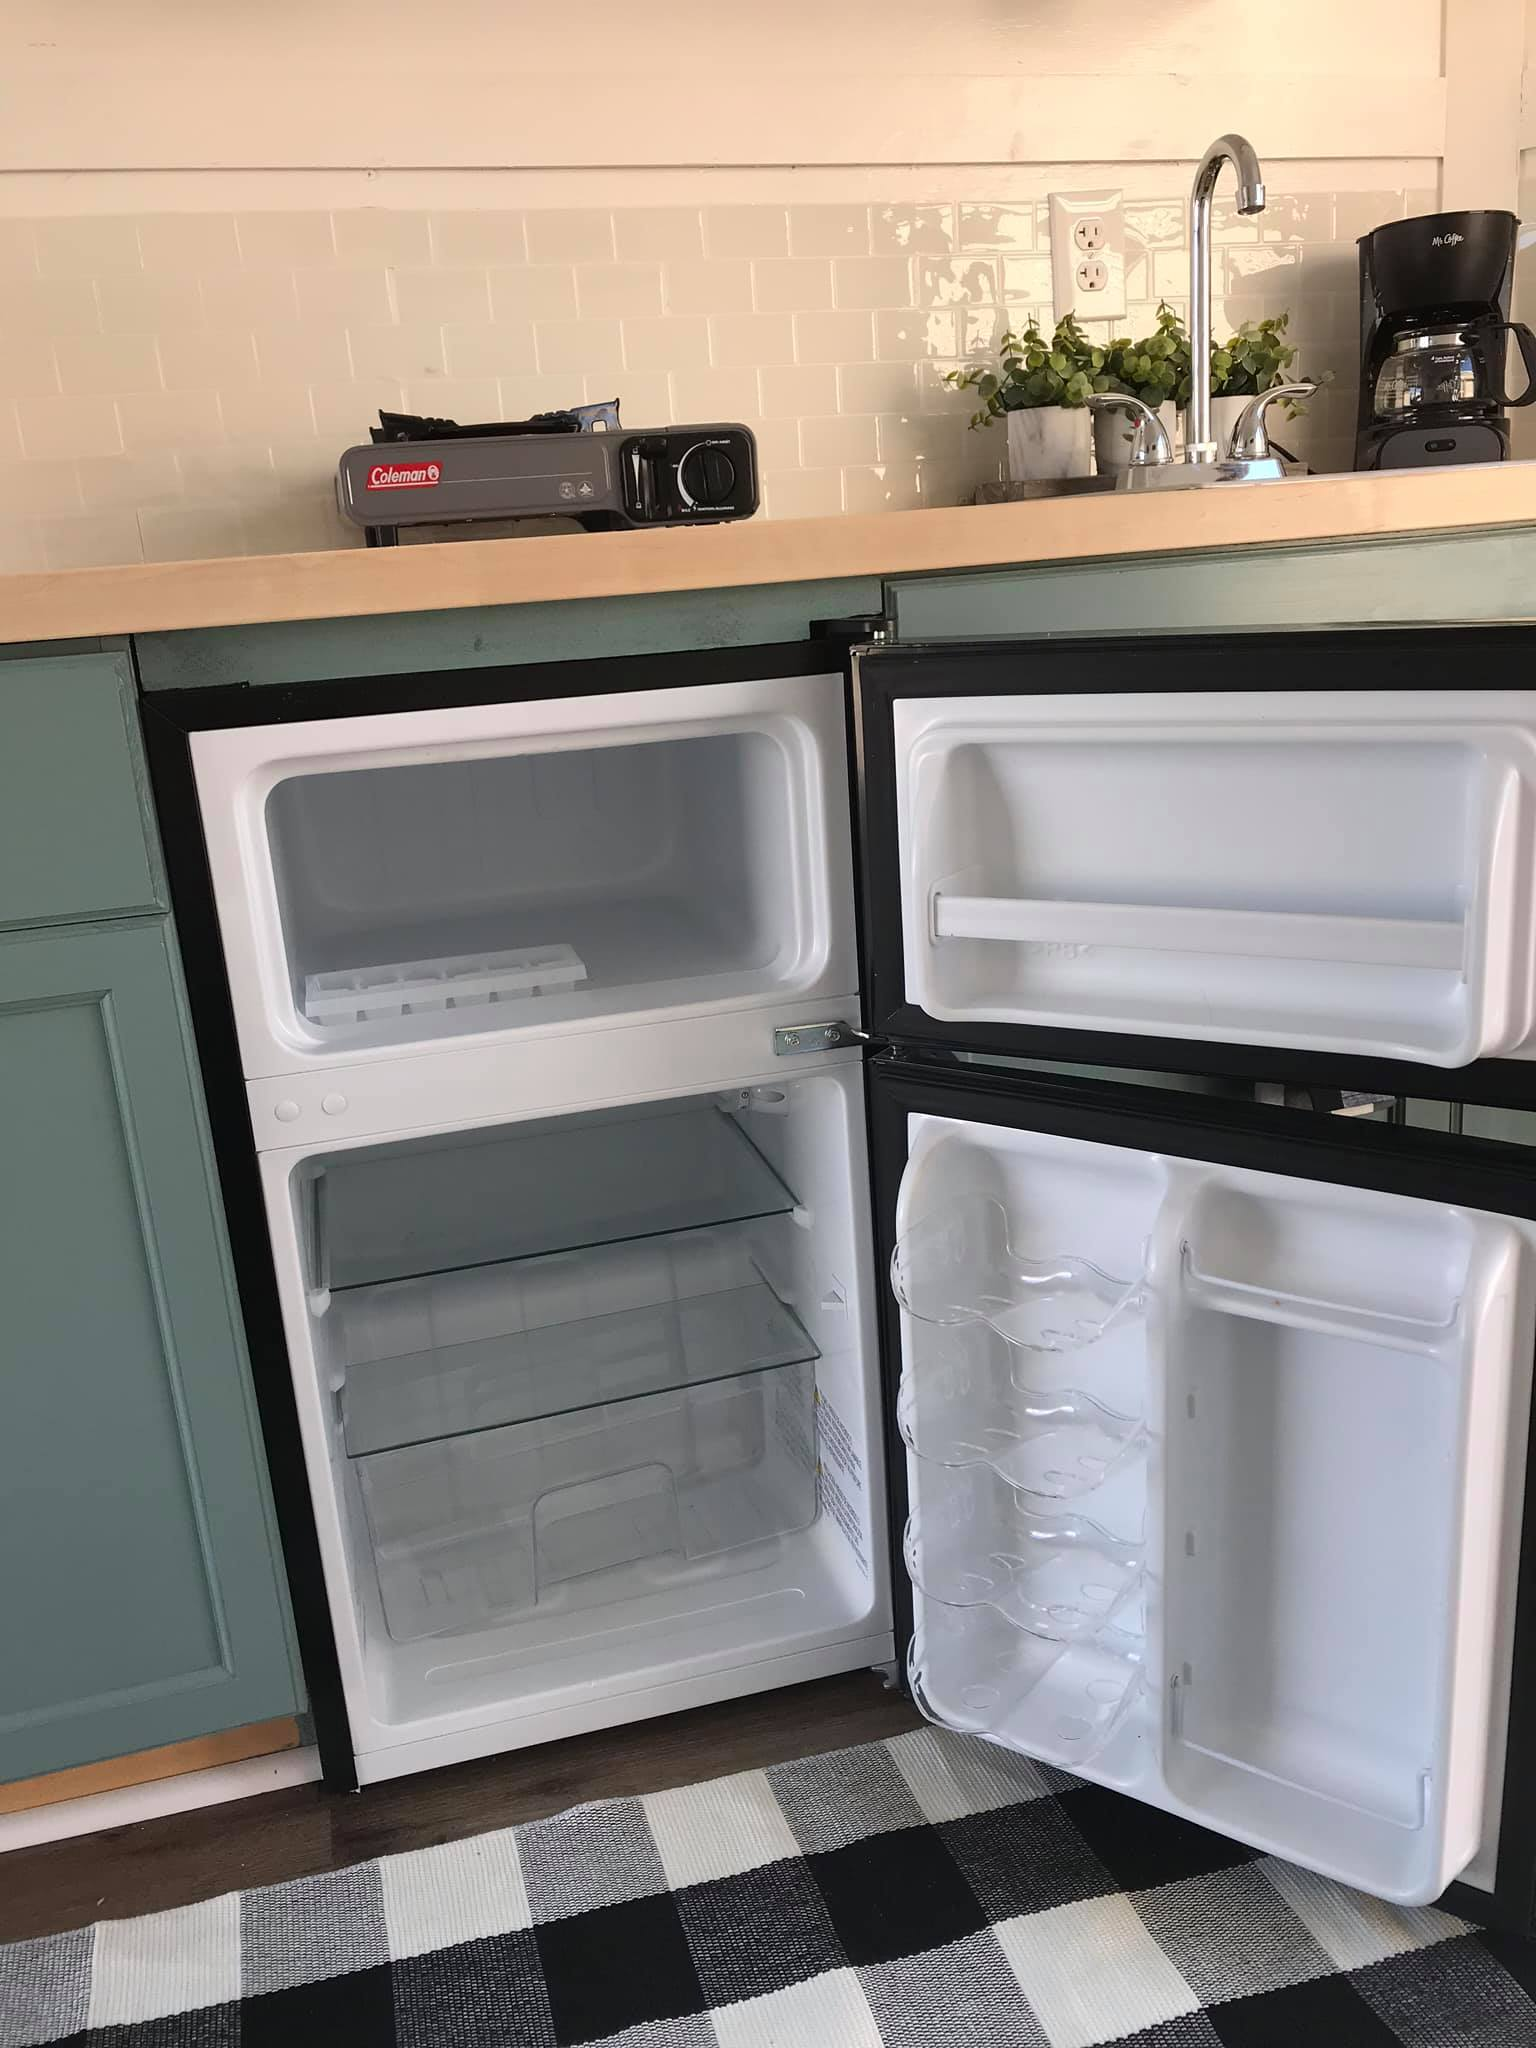 Refrigerator comes with a freezer as well. Covered Wagon EV7-14T3-R 2018